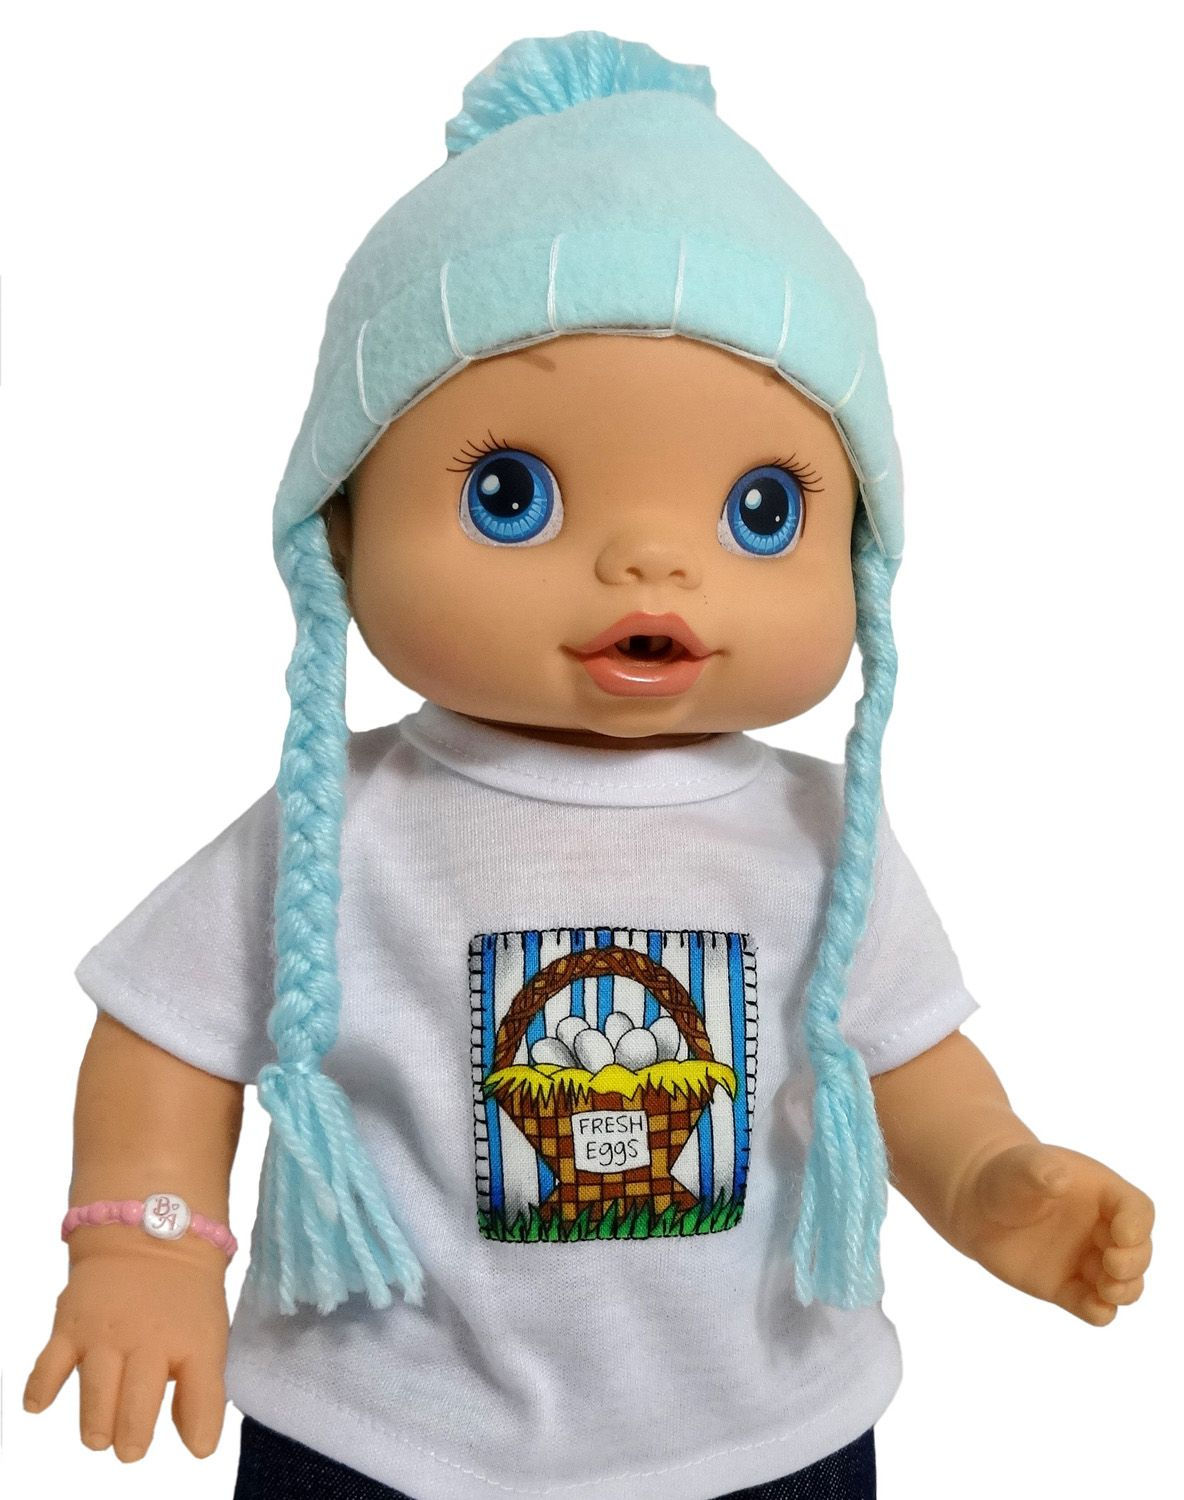 Beanie Blue (With images) Baby dolls, Baby alive dolls